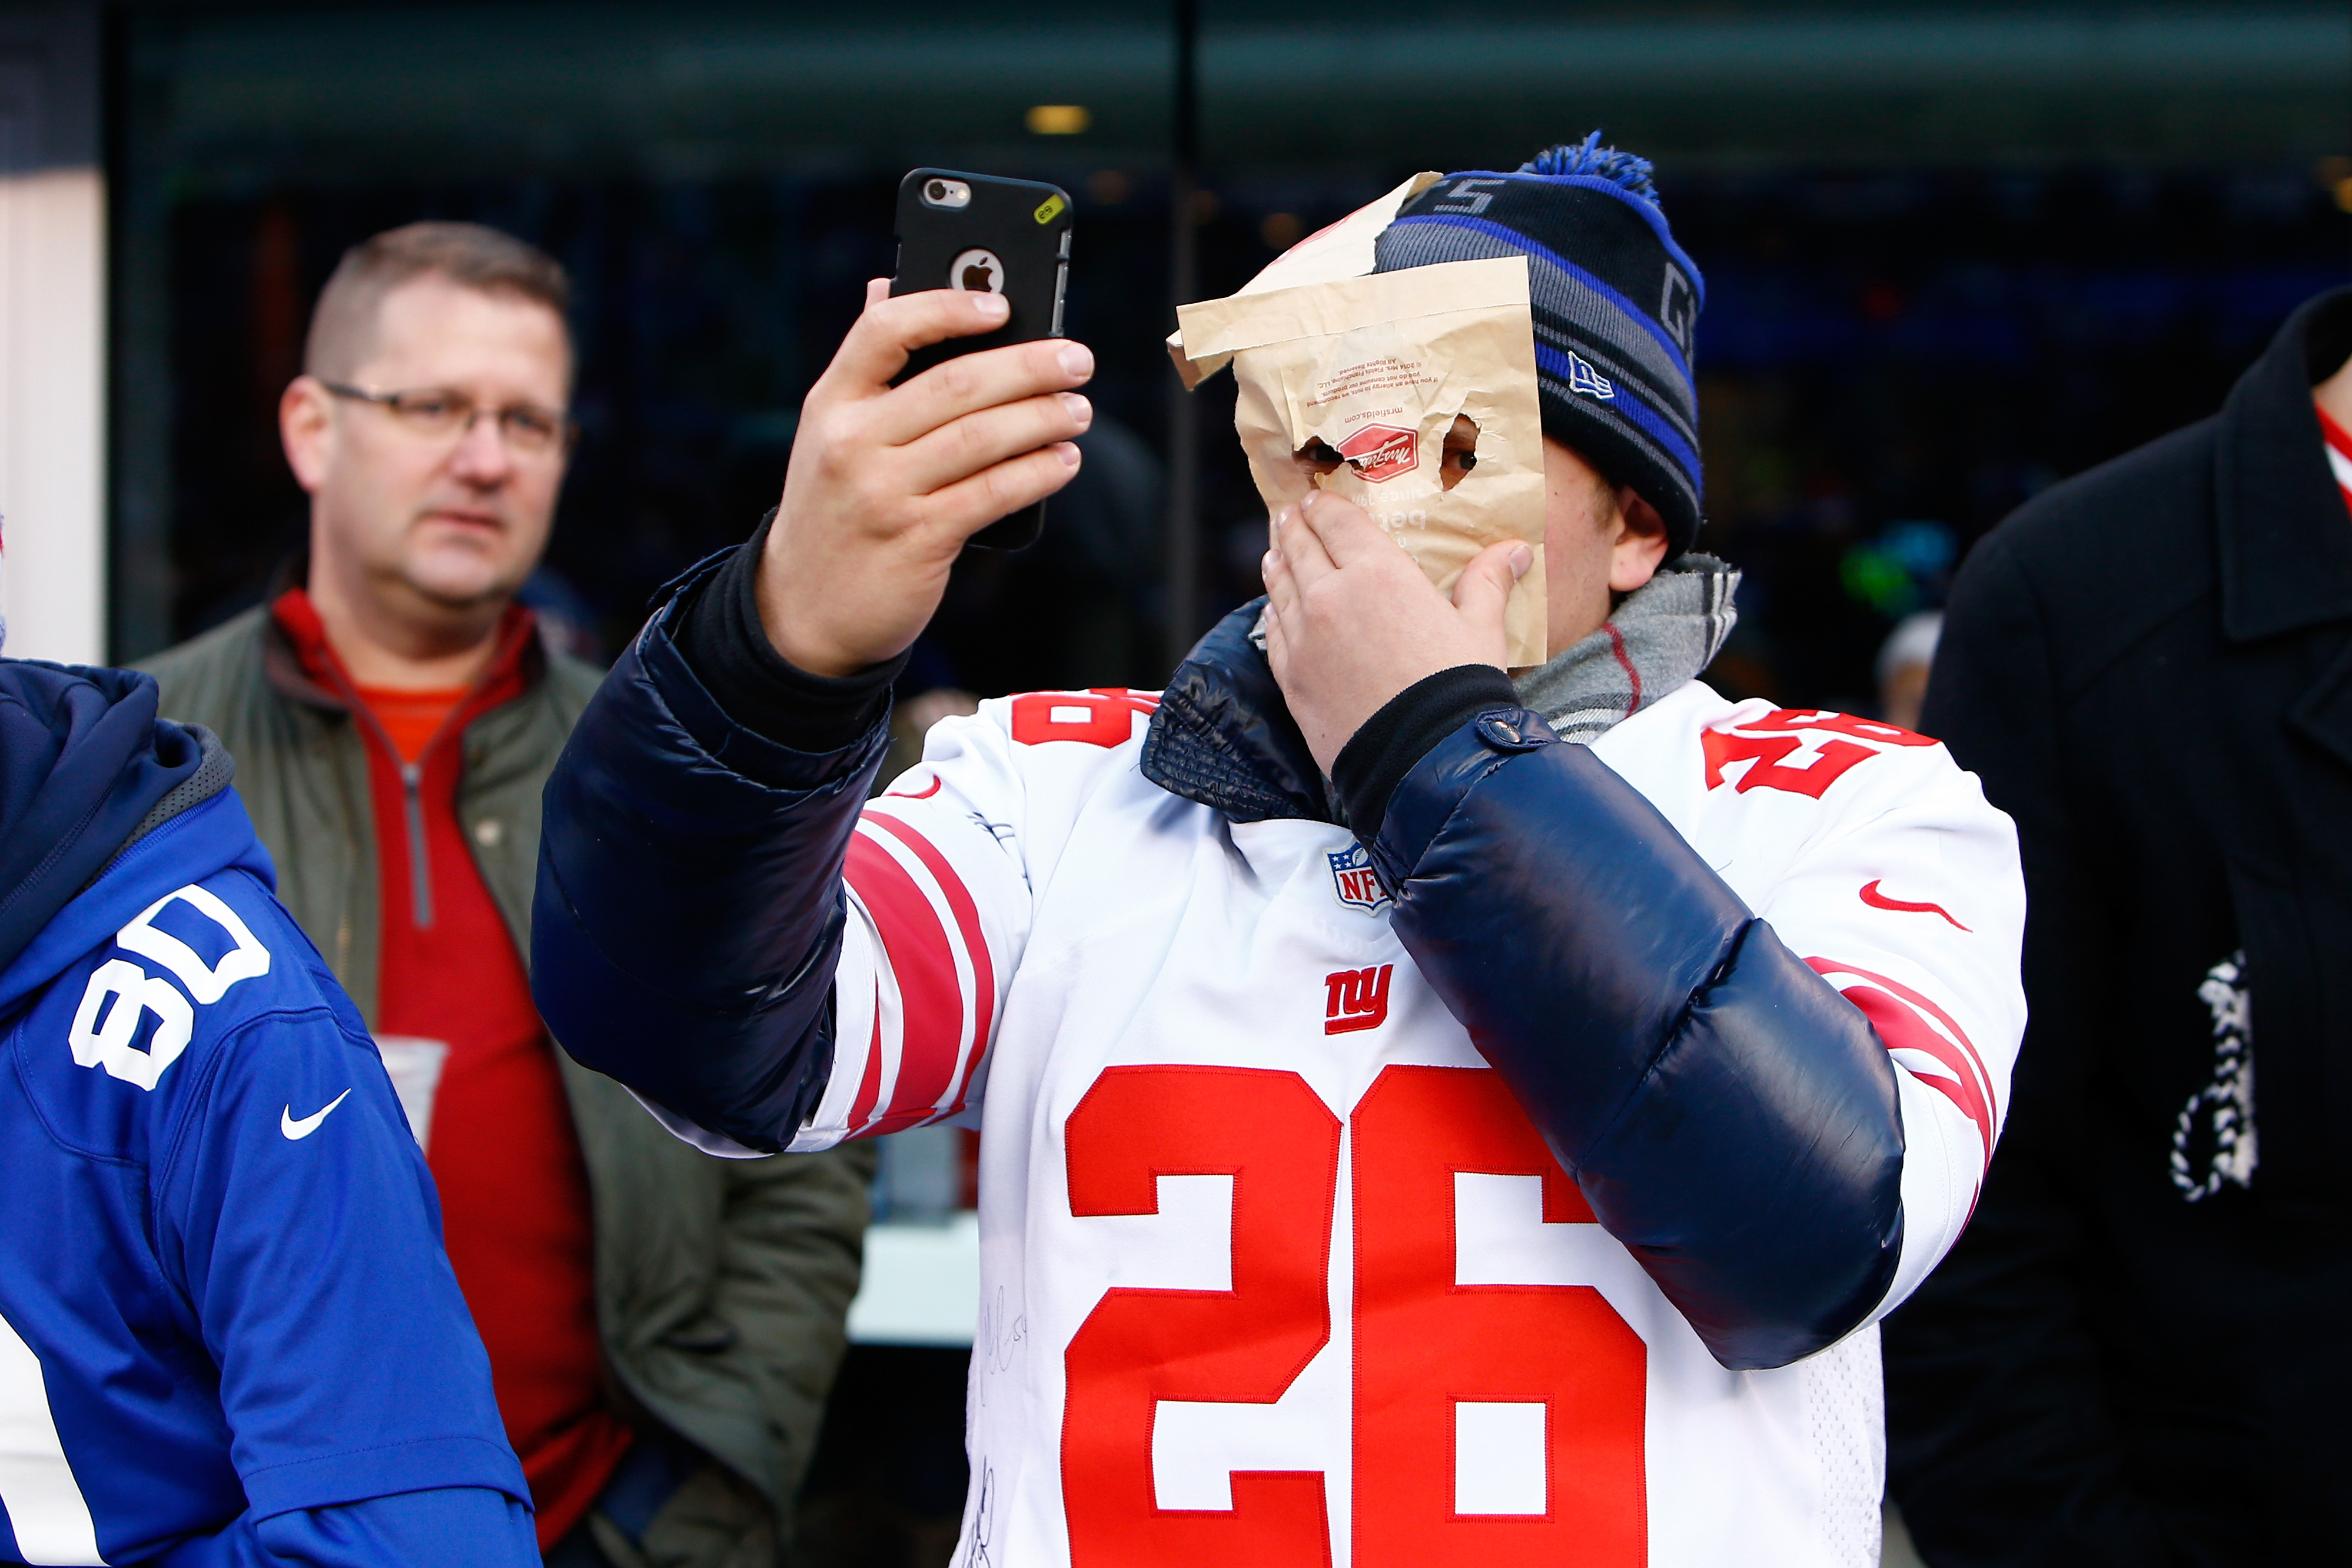 Bag in front of the face selfies? Is it really this bad for Giants fans?